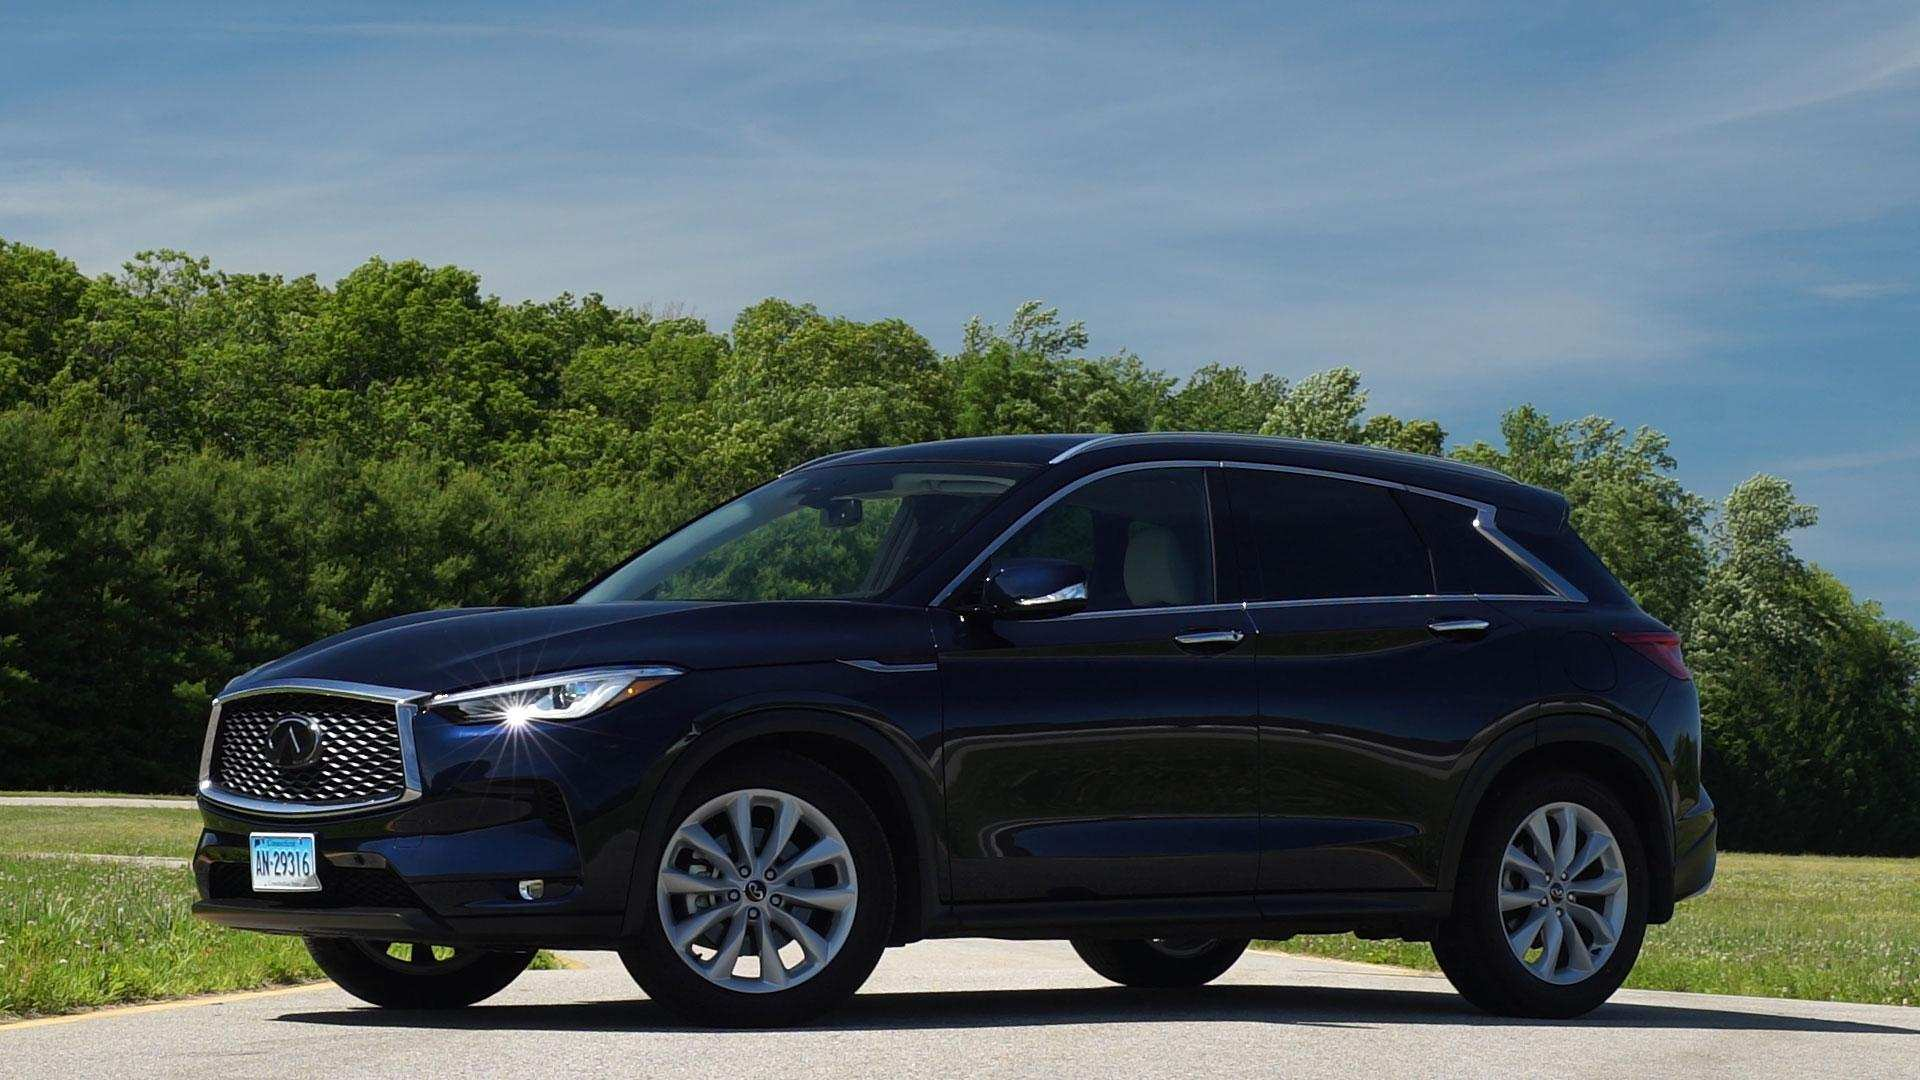 63 Gallery of Best 2019 Infiniti Qx50 Kbb Review History by Best 2019 Infiniti Qx50 Kbb Review